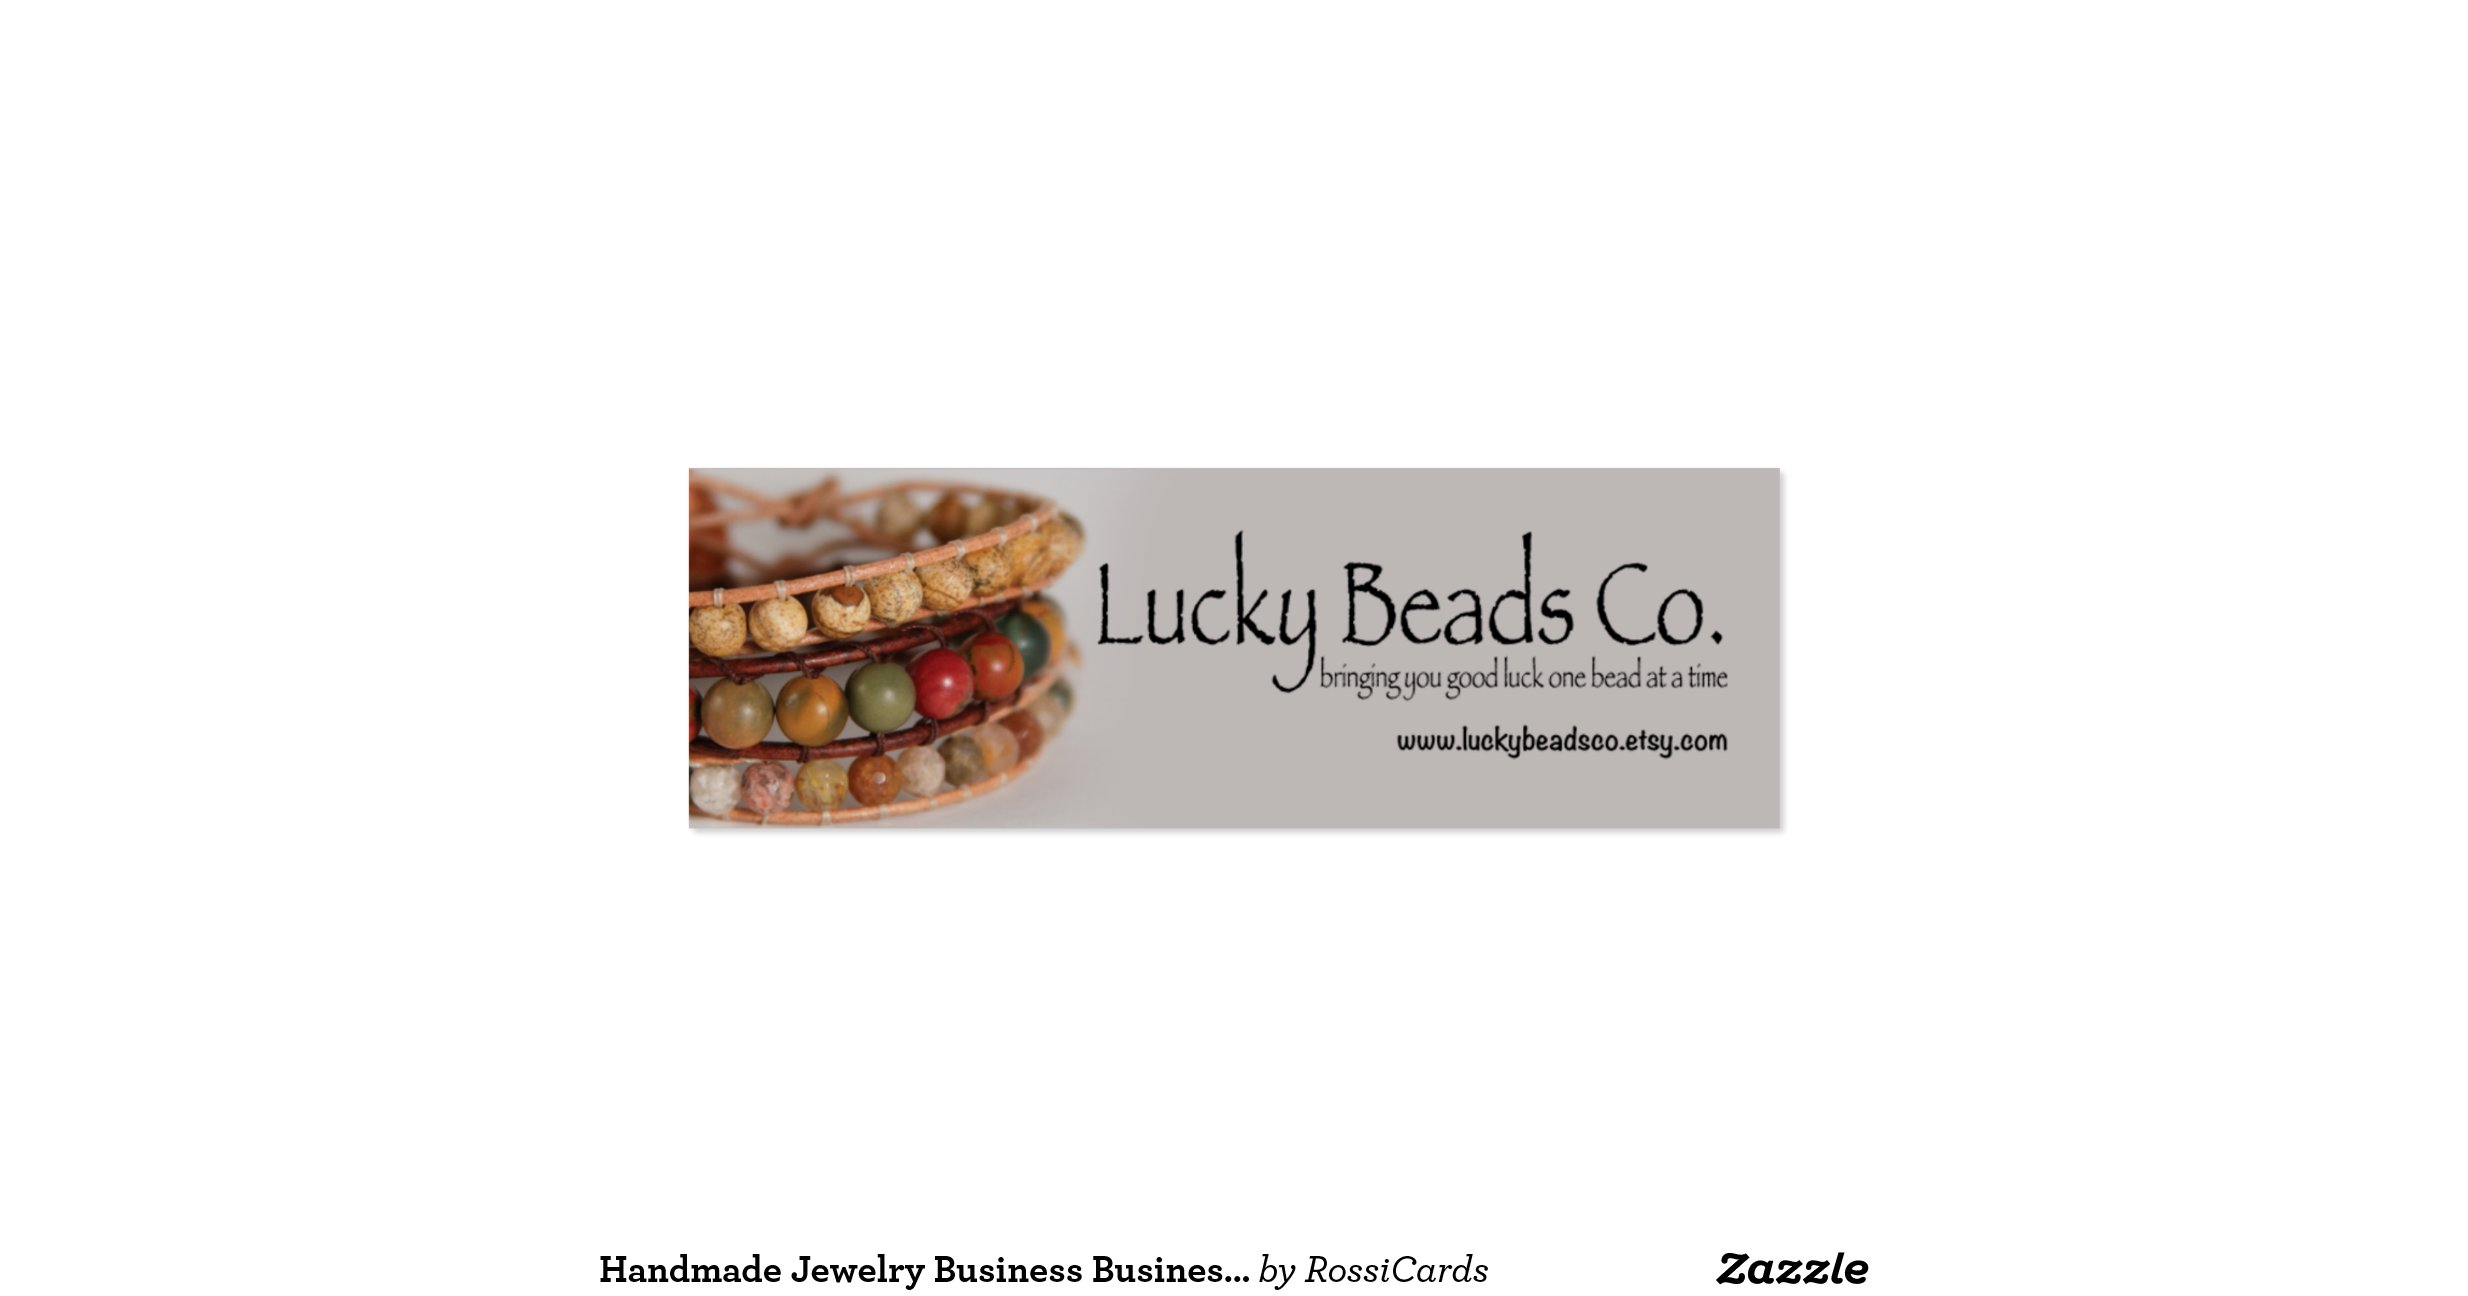 Handmade jewelry business business card for Handmade jewelry business cards